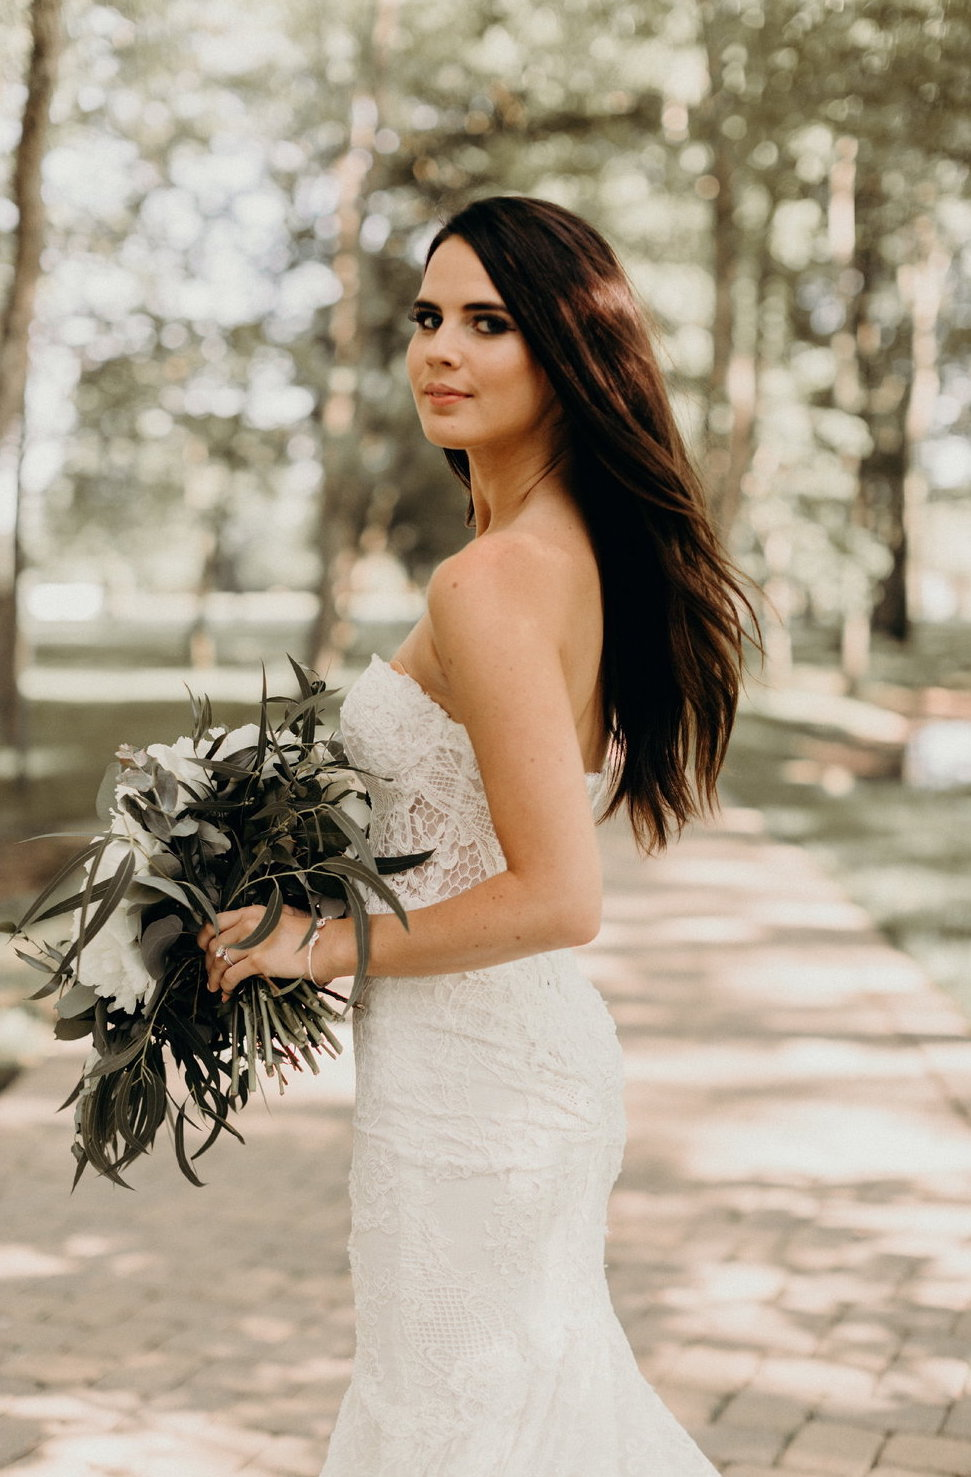 nashville-wedding-dress-boutique.jpg